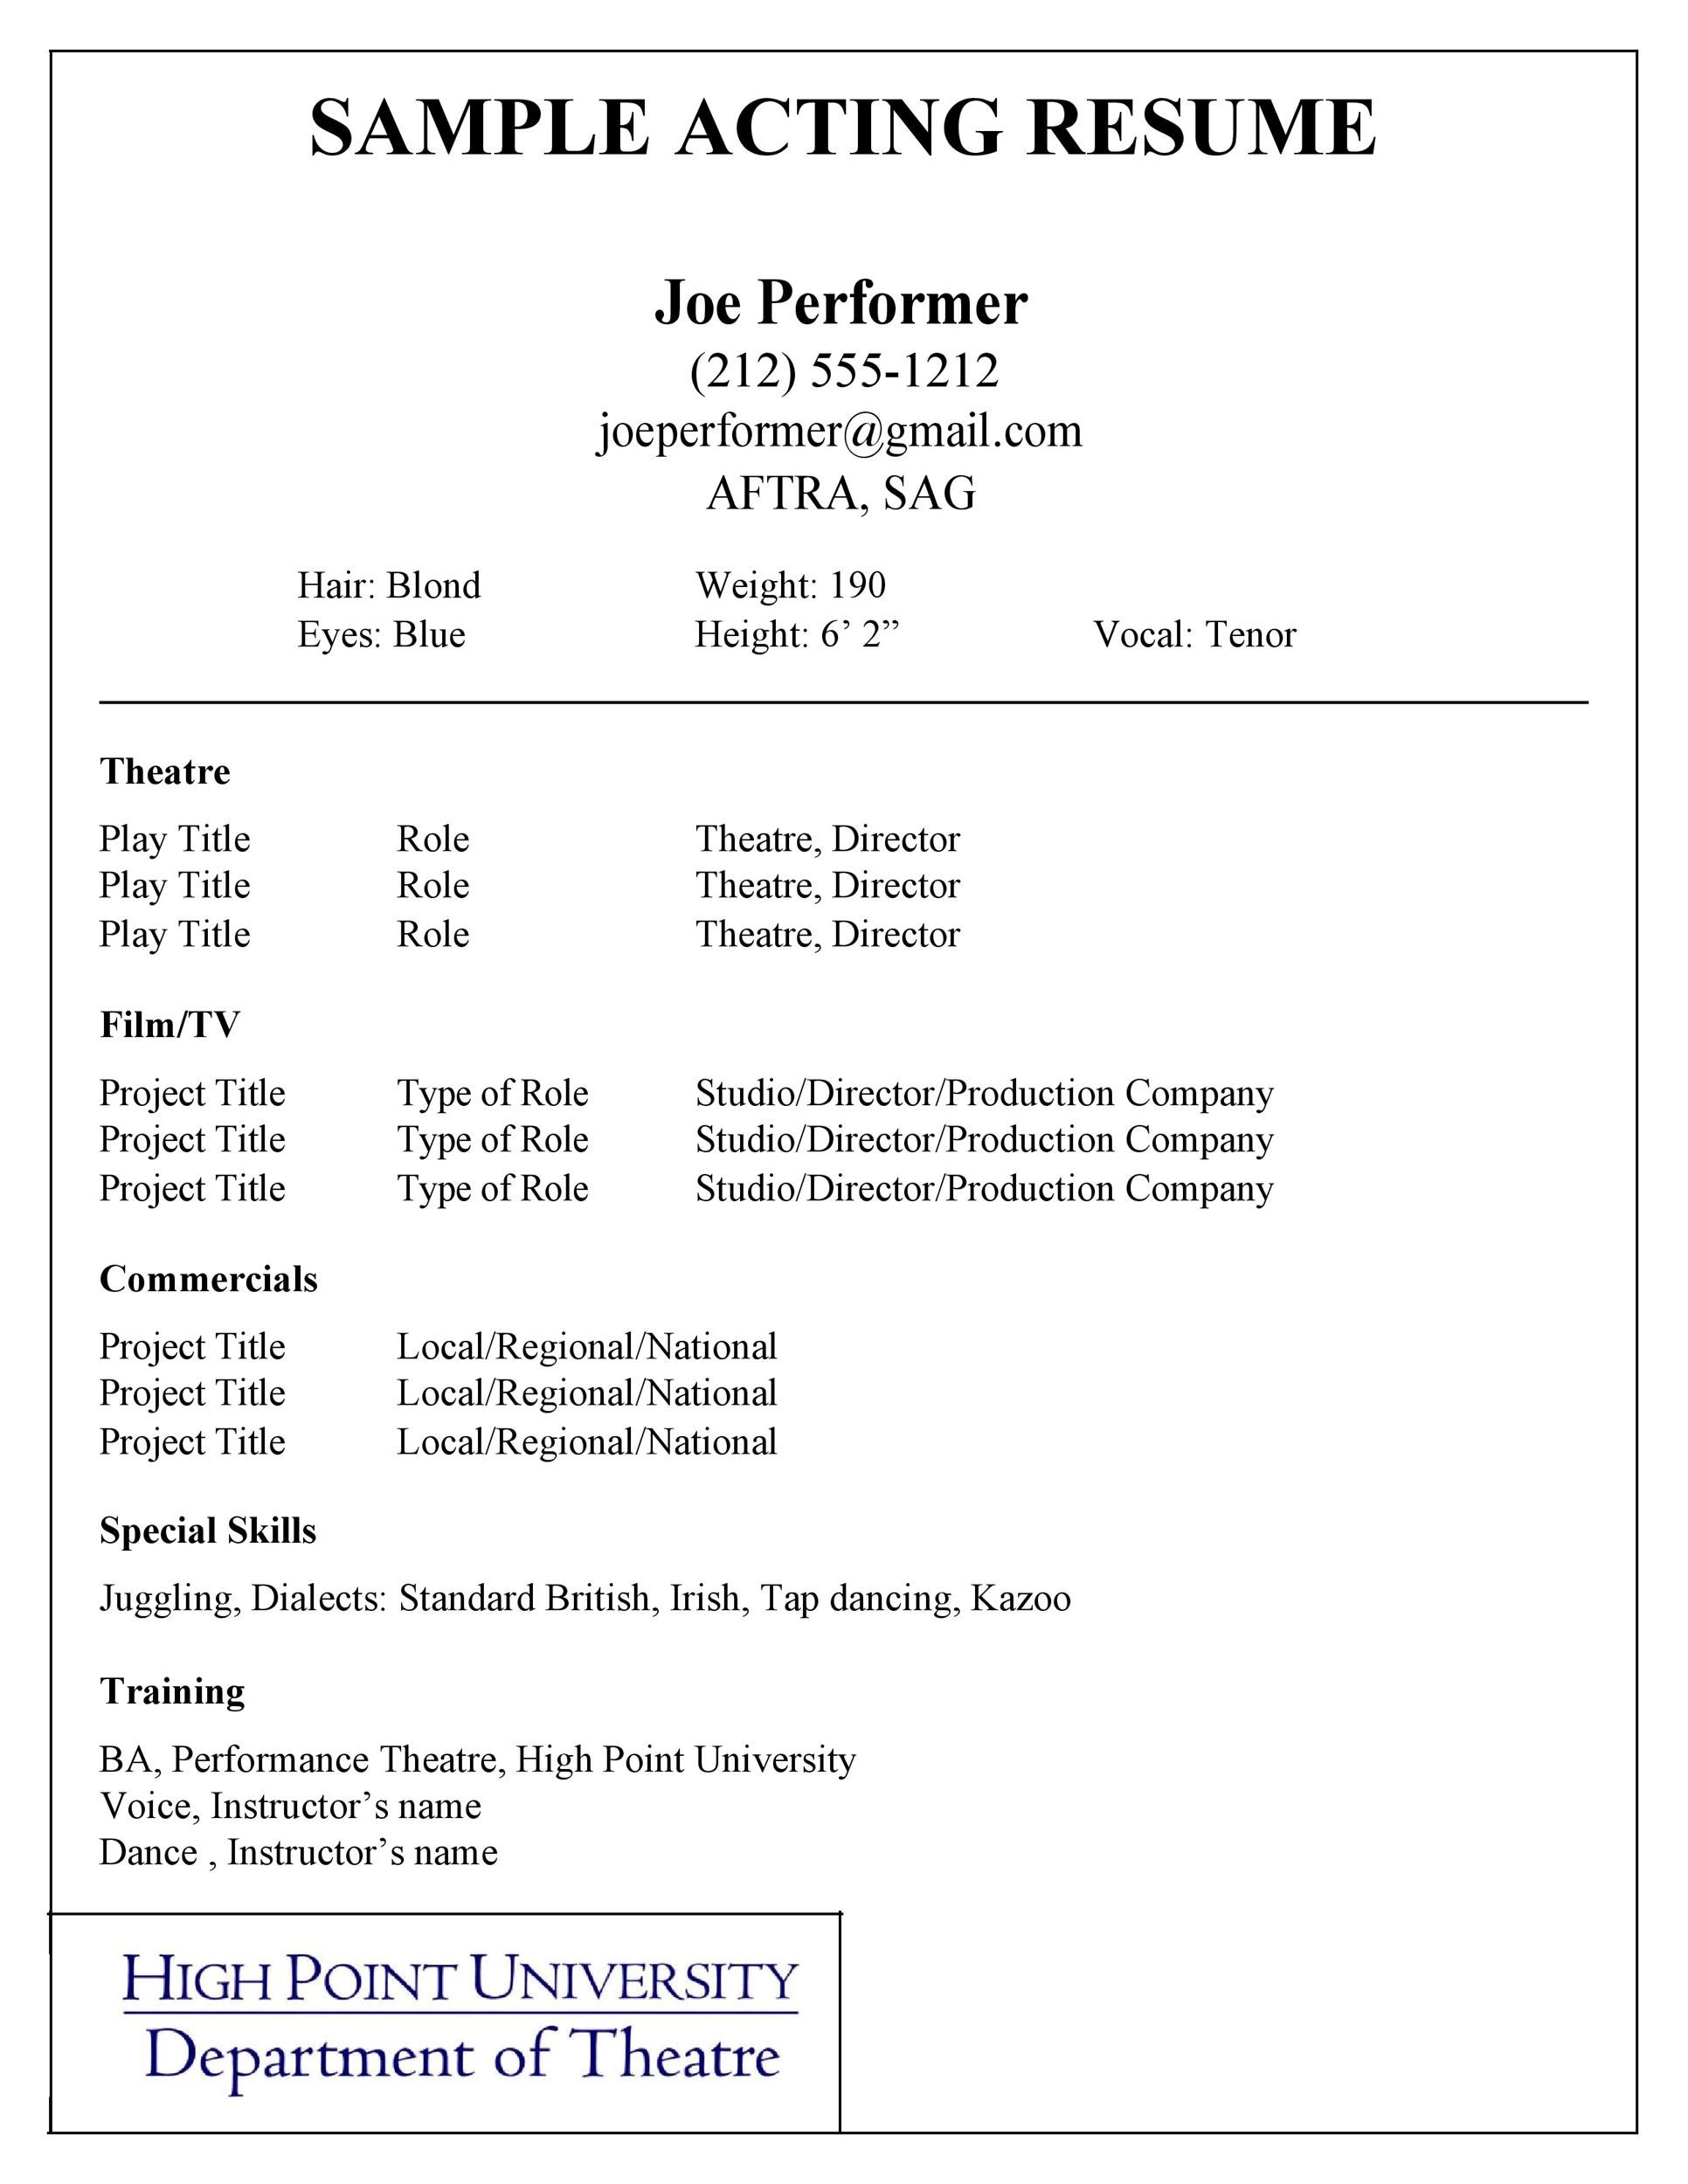 50 Free Acting Resume Templates Word Google Docs ᐅ